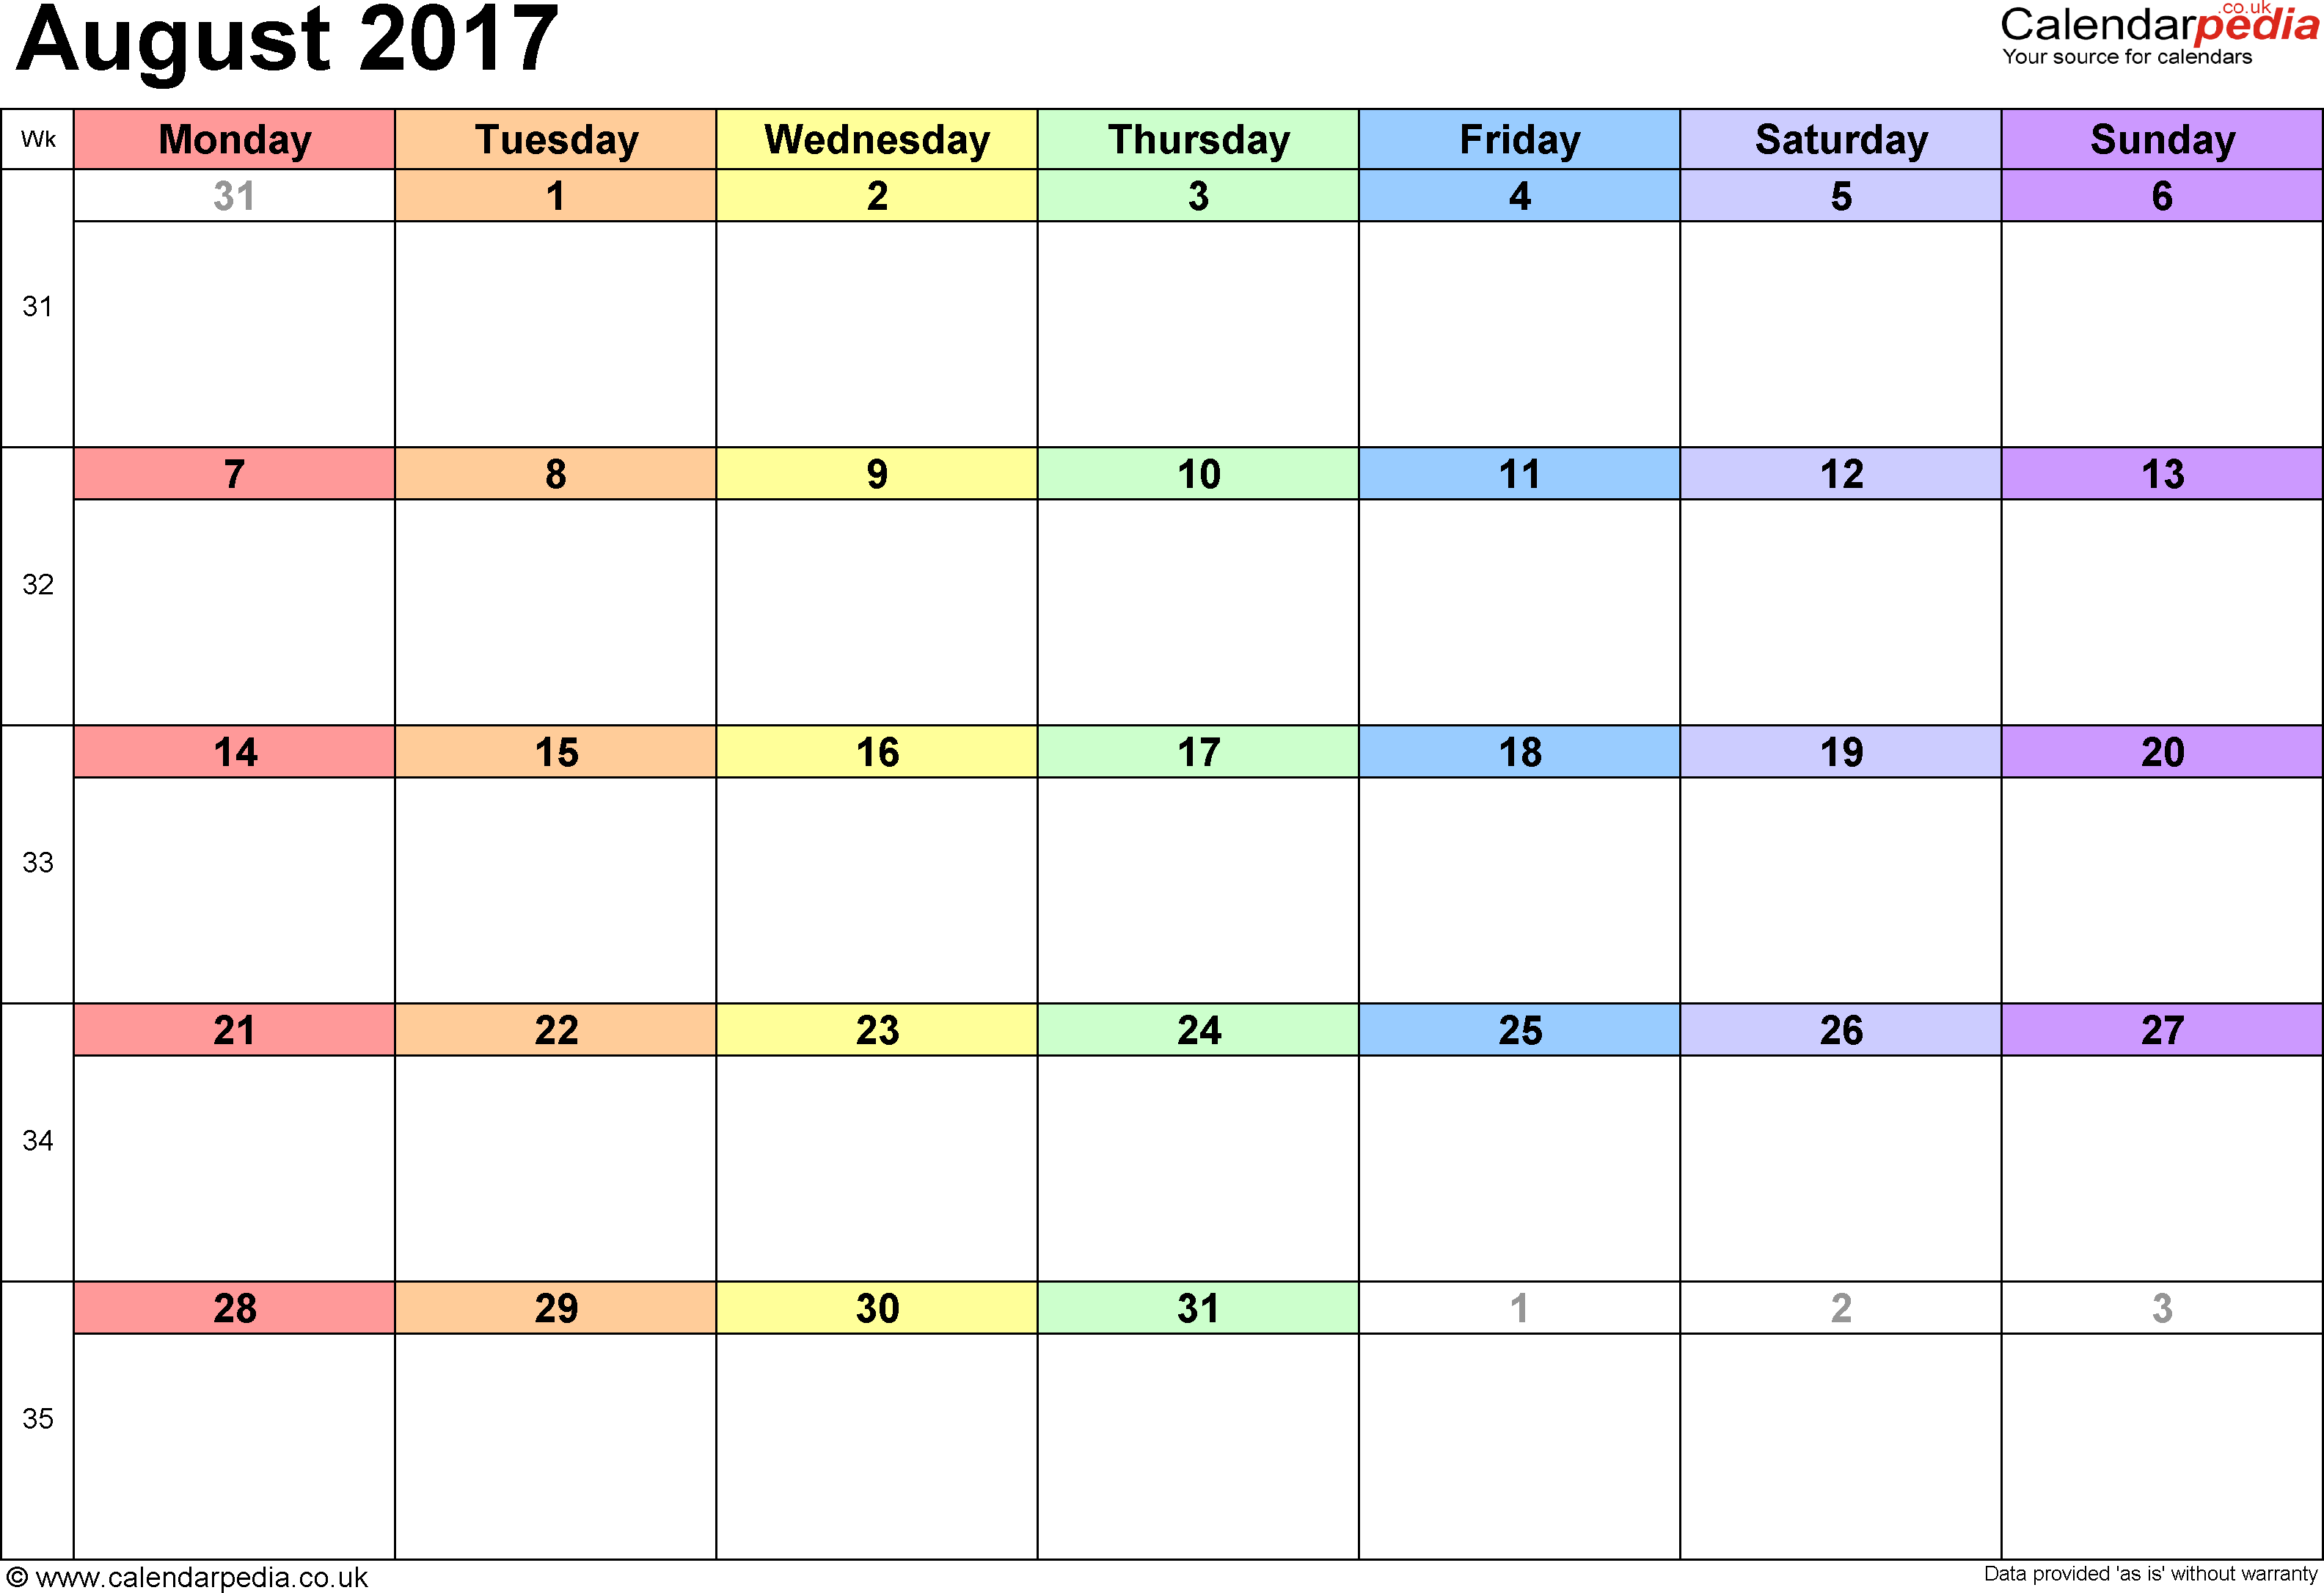 Calendar August 2017 UK, Bank Holidays, Excel/PDF/Word Templates